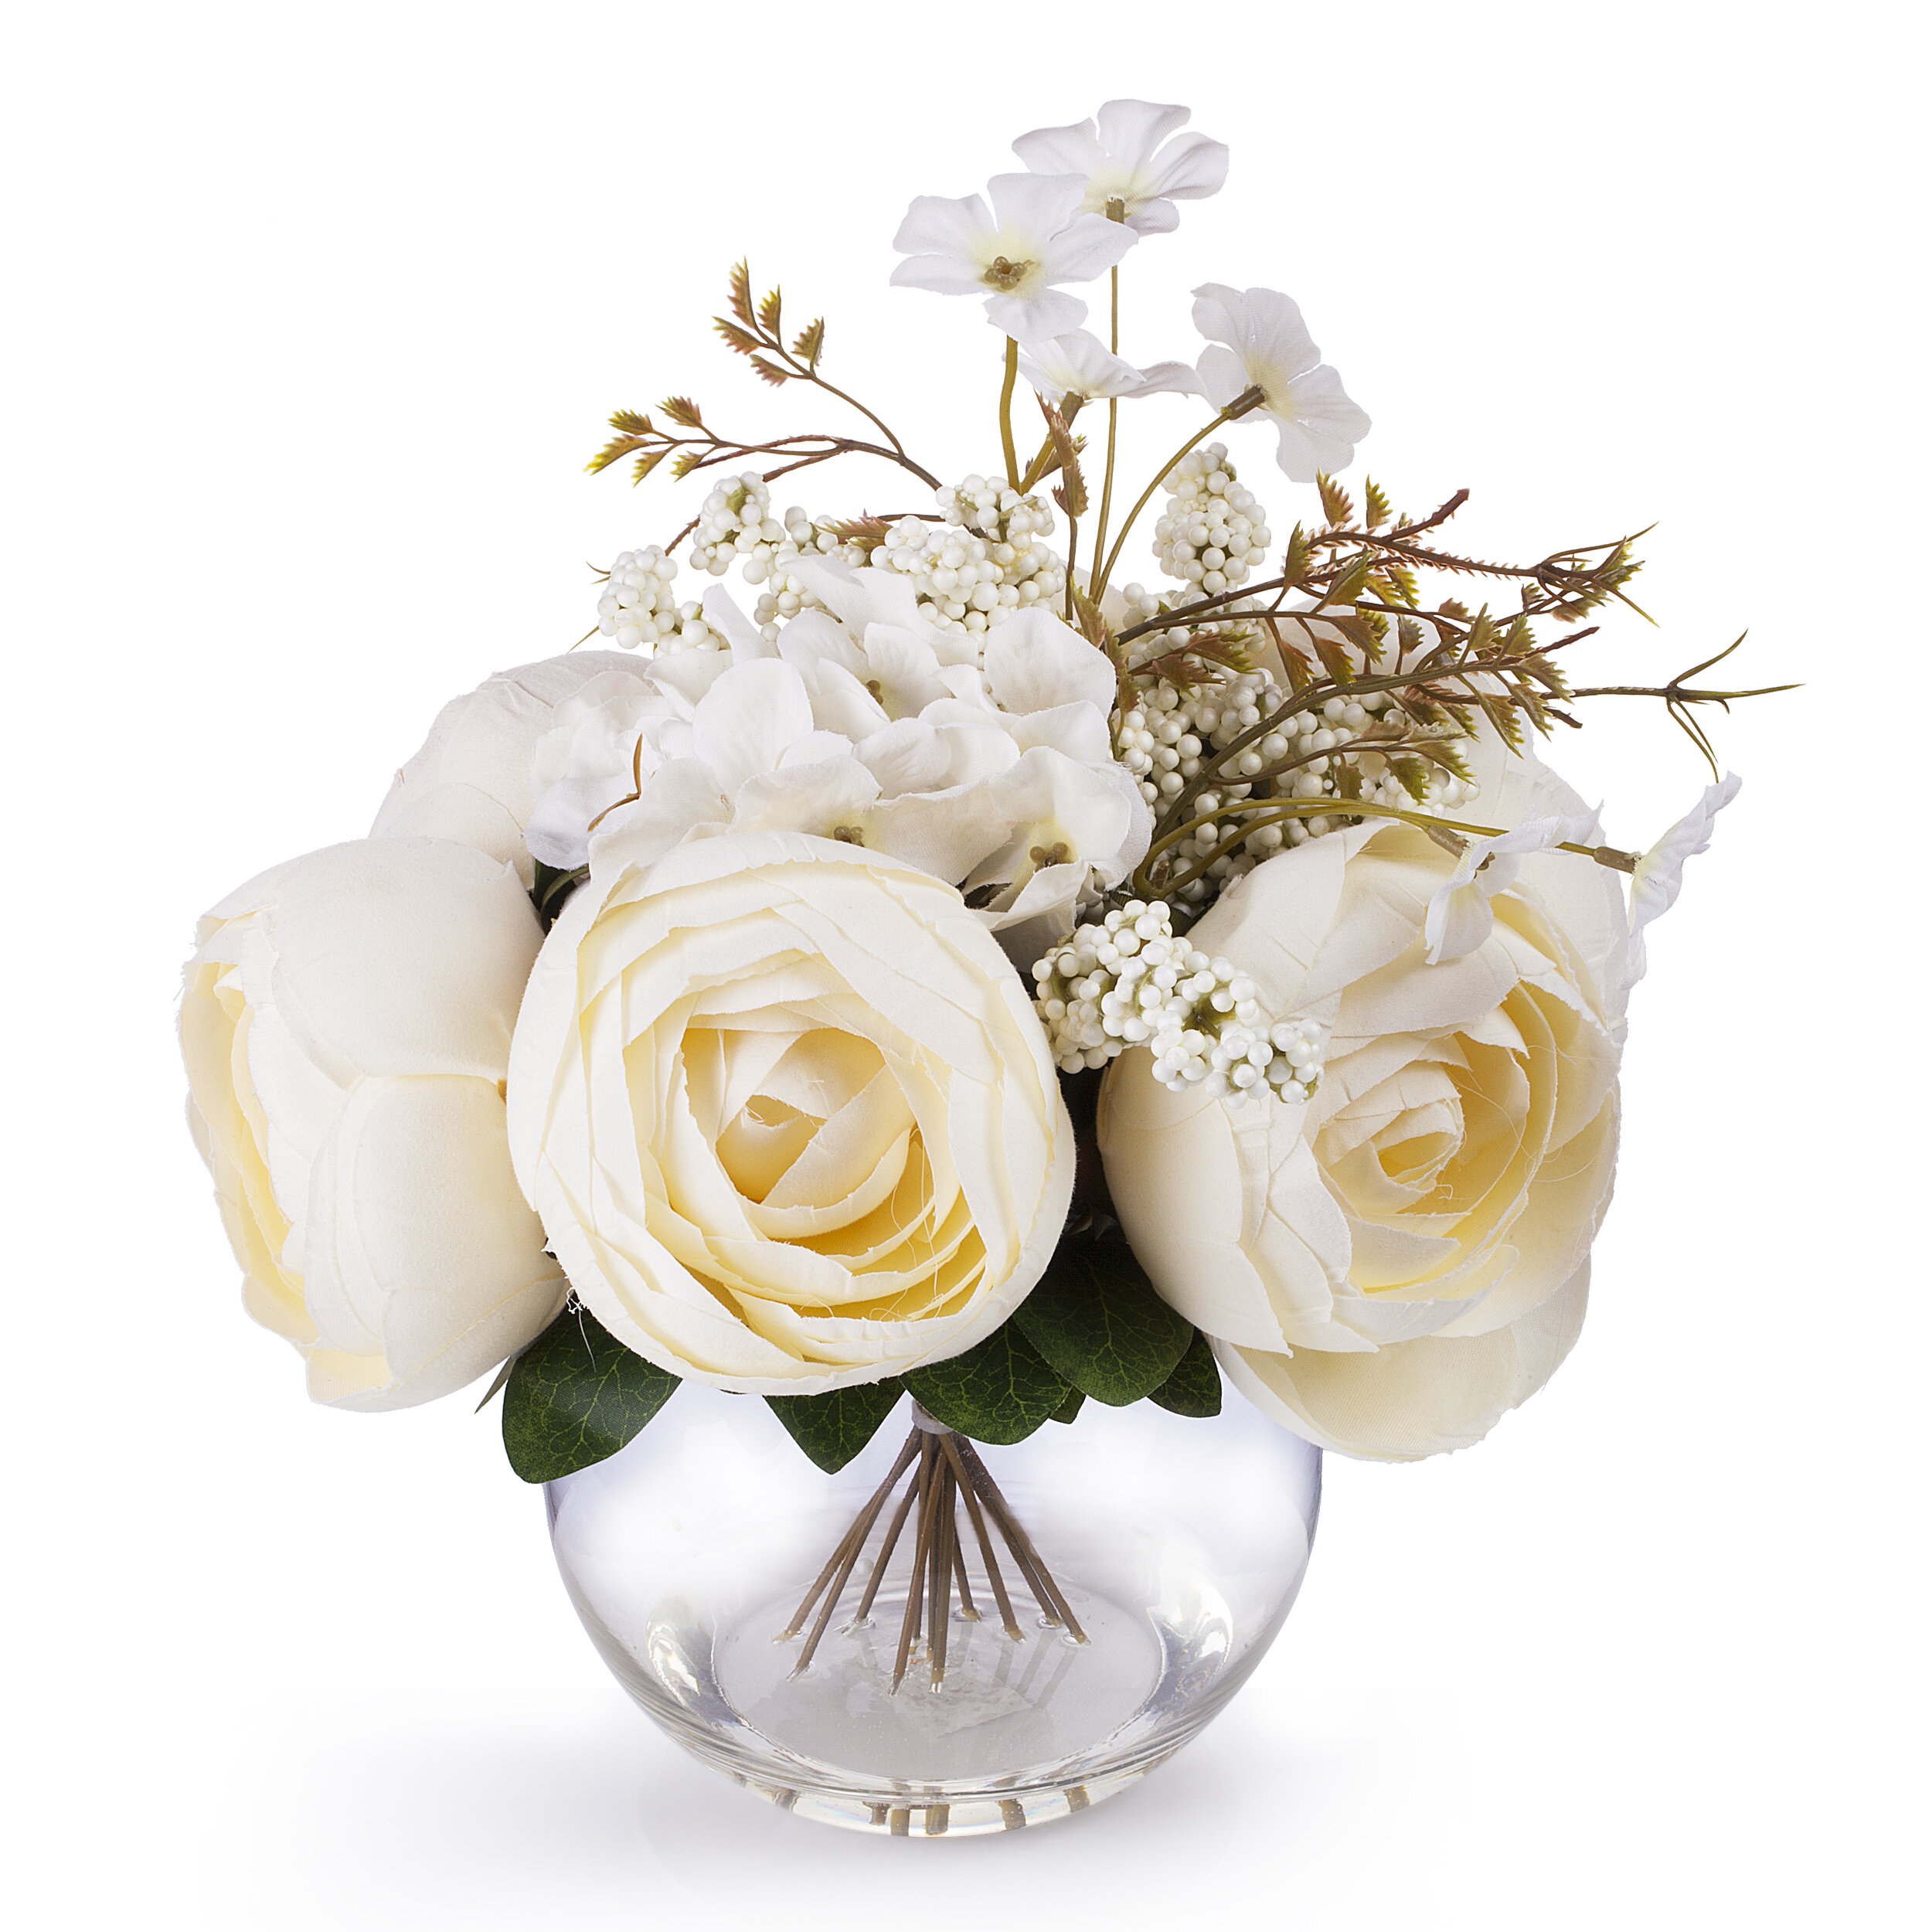 House Of Hampton Beige Silk Peony And Hydrangea Flower Arrangement In Clear Glass Vase With Faux Water Reviews Wayfair